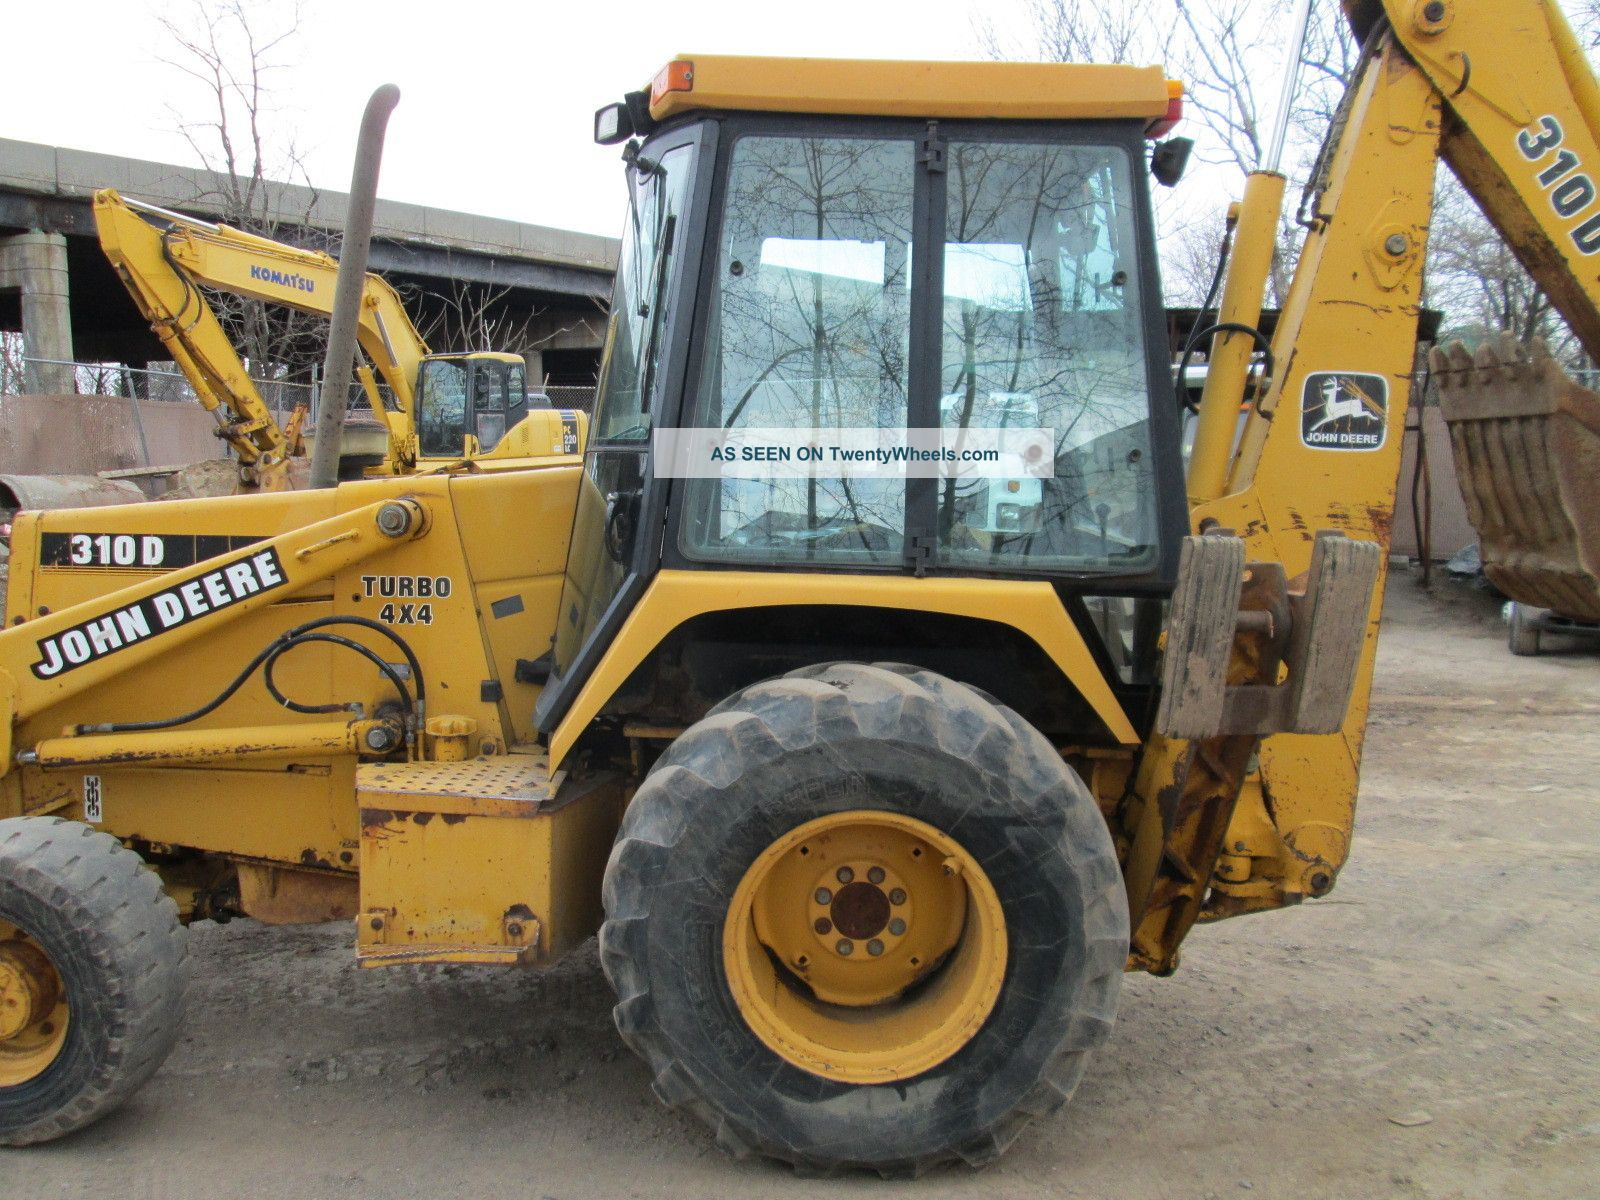 John Deere 310 Backhoe Manual Ignition Switch Wiring Diagram Additionally 110 Tlb 1994 310d 4x4 Owner Loaders Photo 1